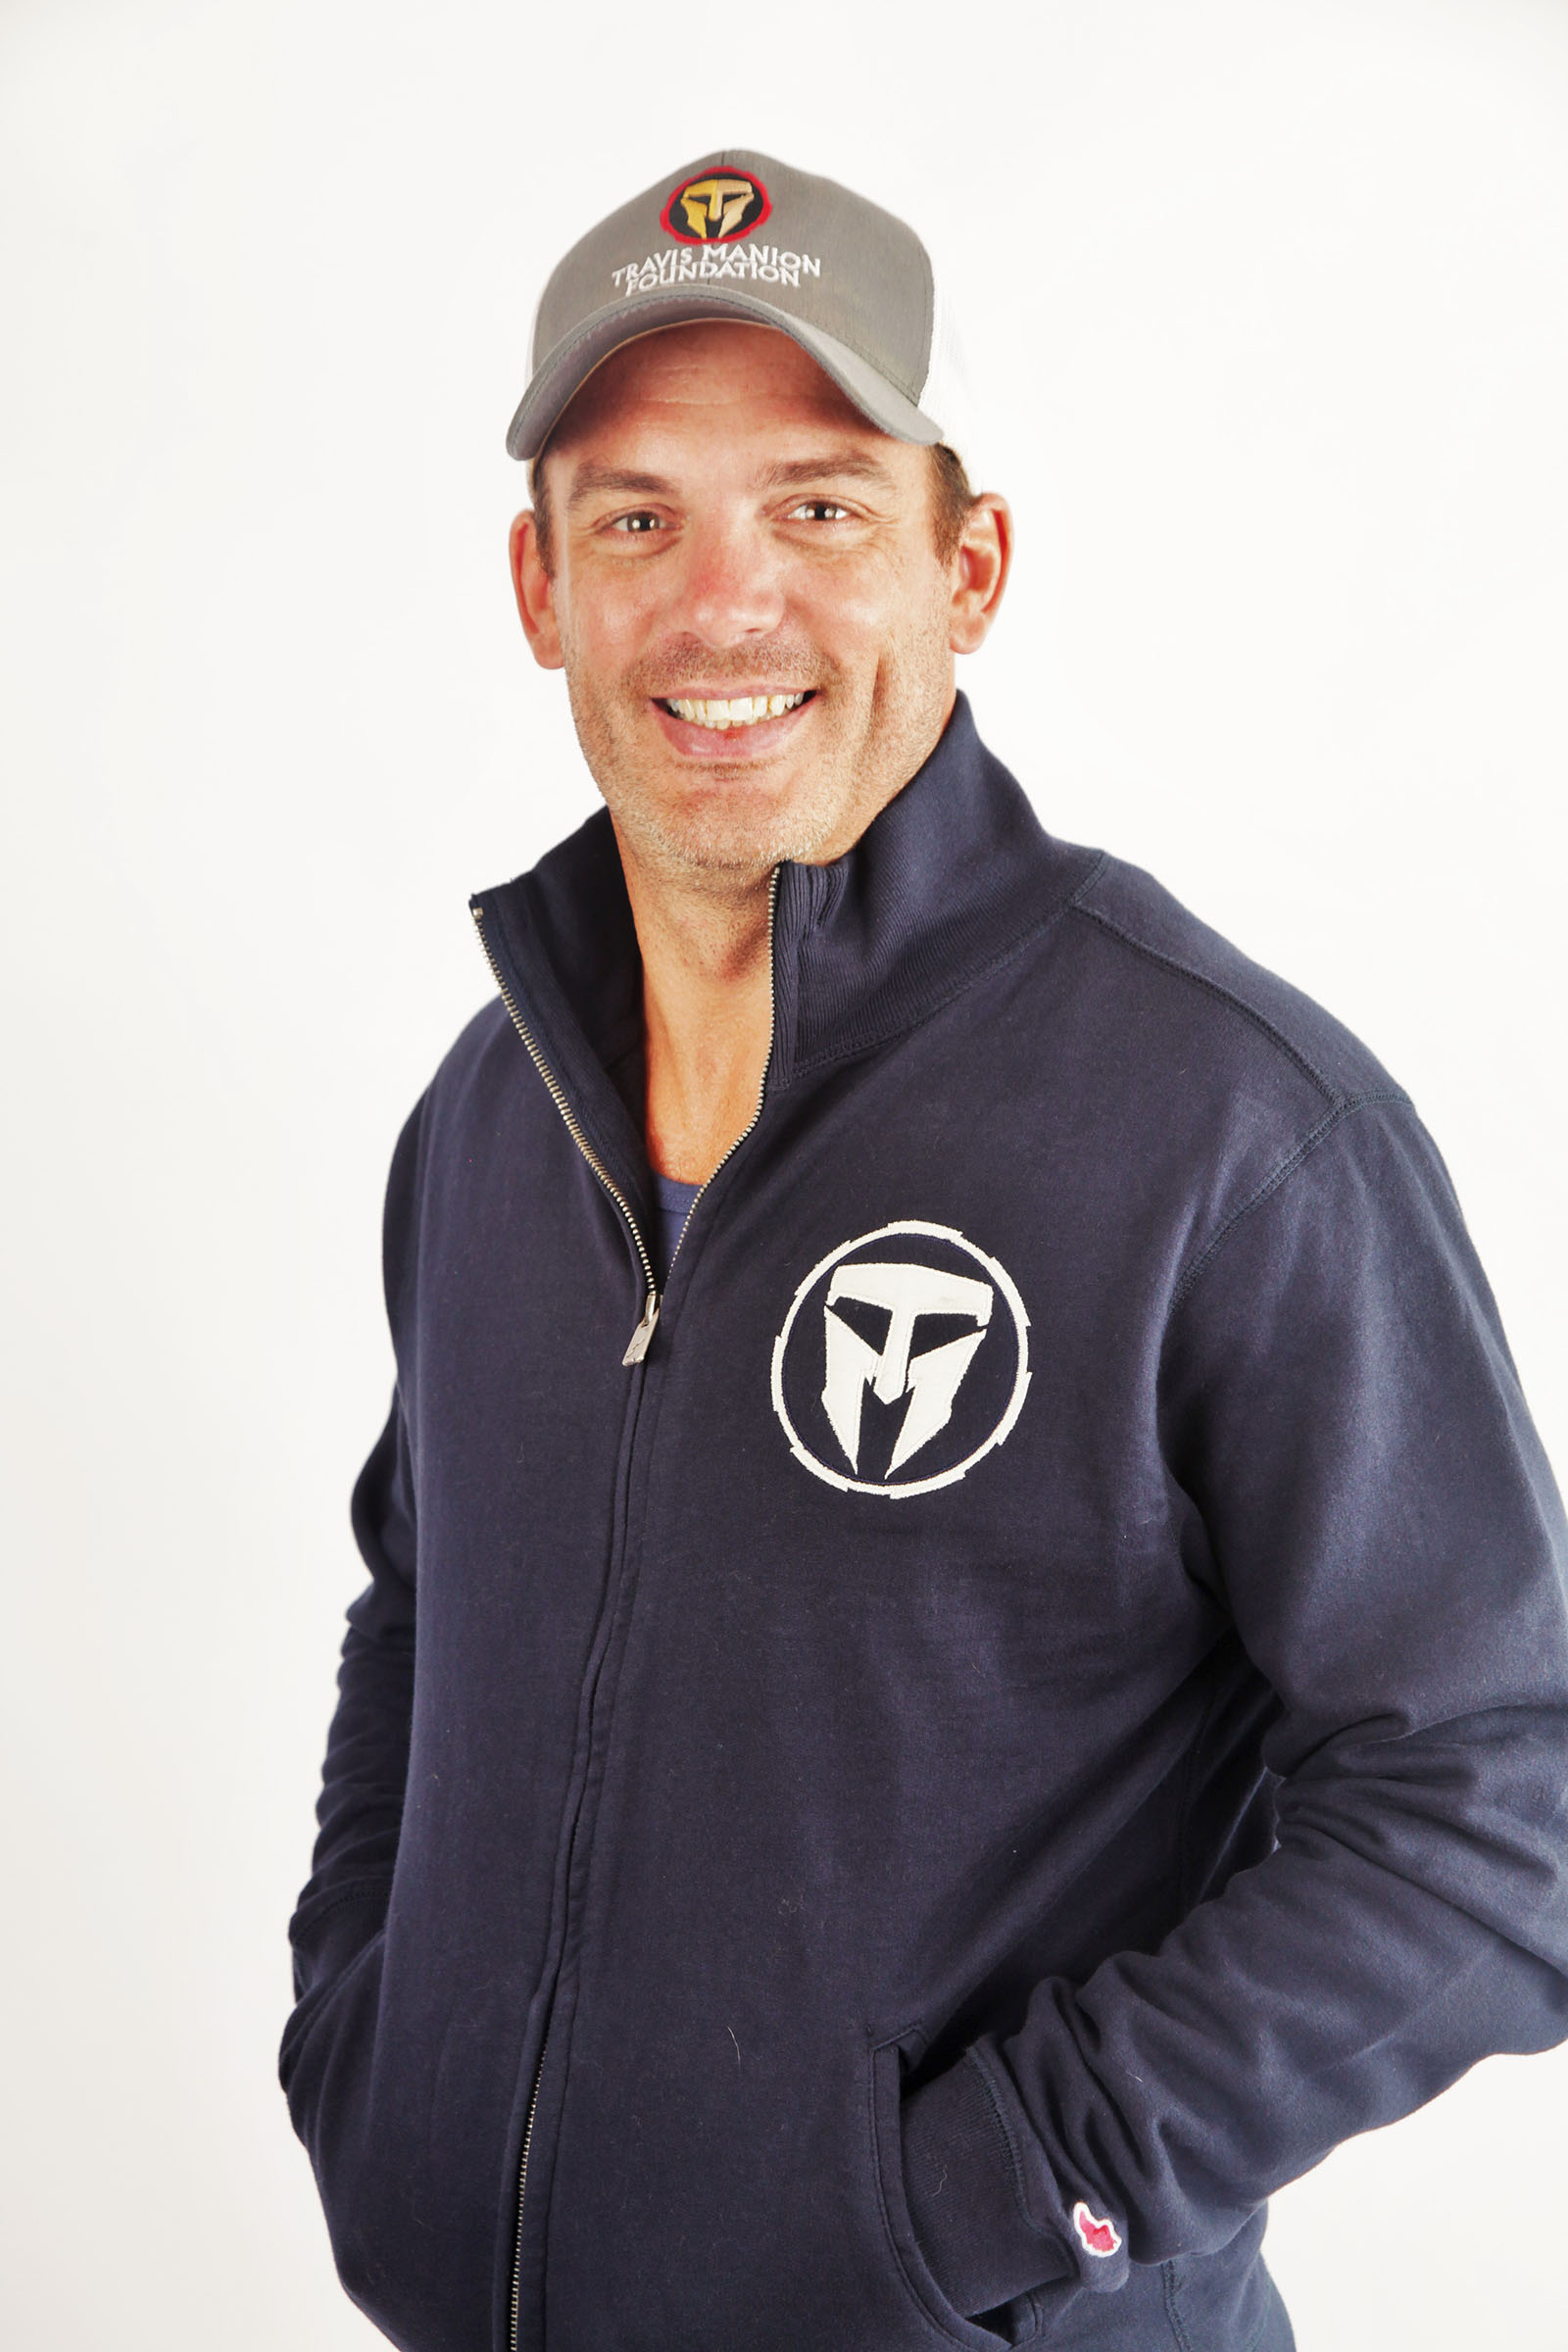 Travis Manion Foundation Unisex Manchester Track Jacket